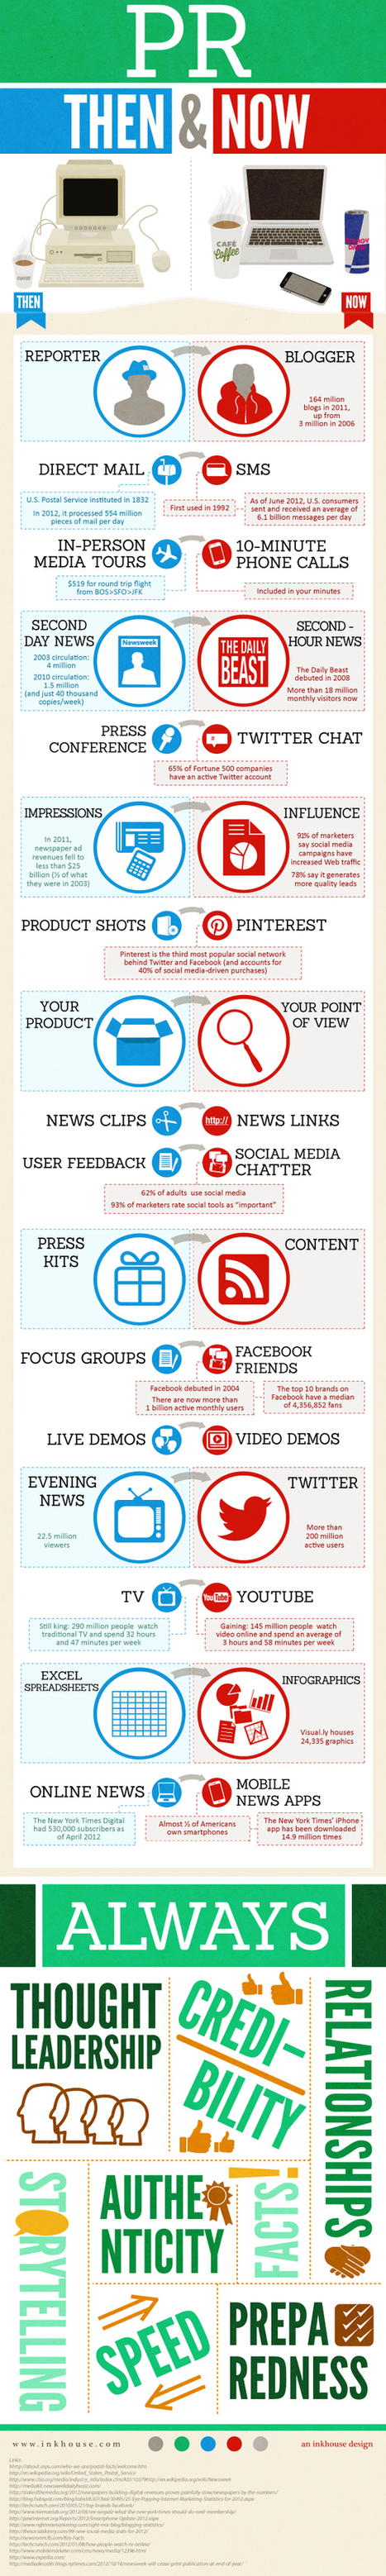 Good infographic. Social Media Releases & The Art of Conversation - The Re-imagining of PR | 1012ICT Five most important technologies in the next 5-10 years | Scoop.it